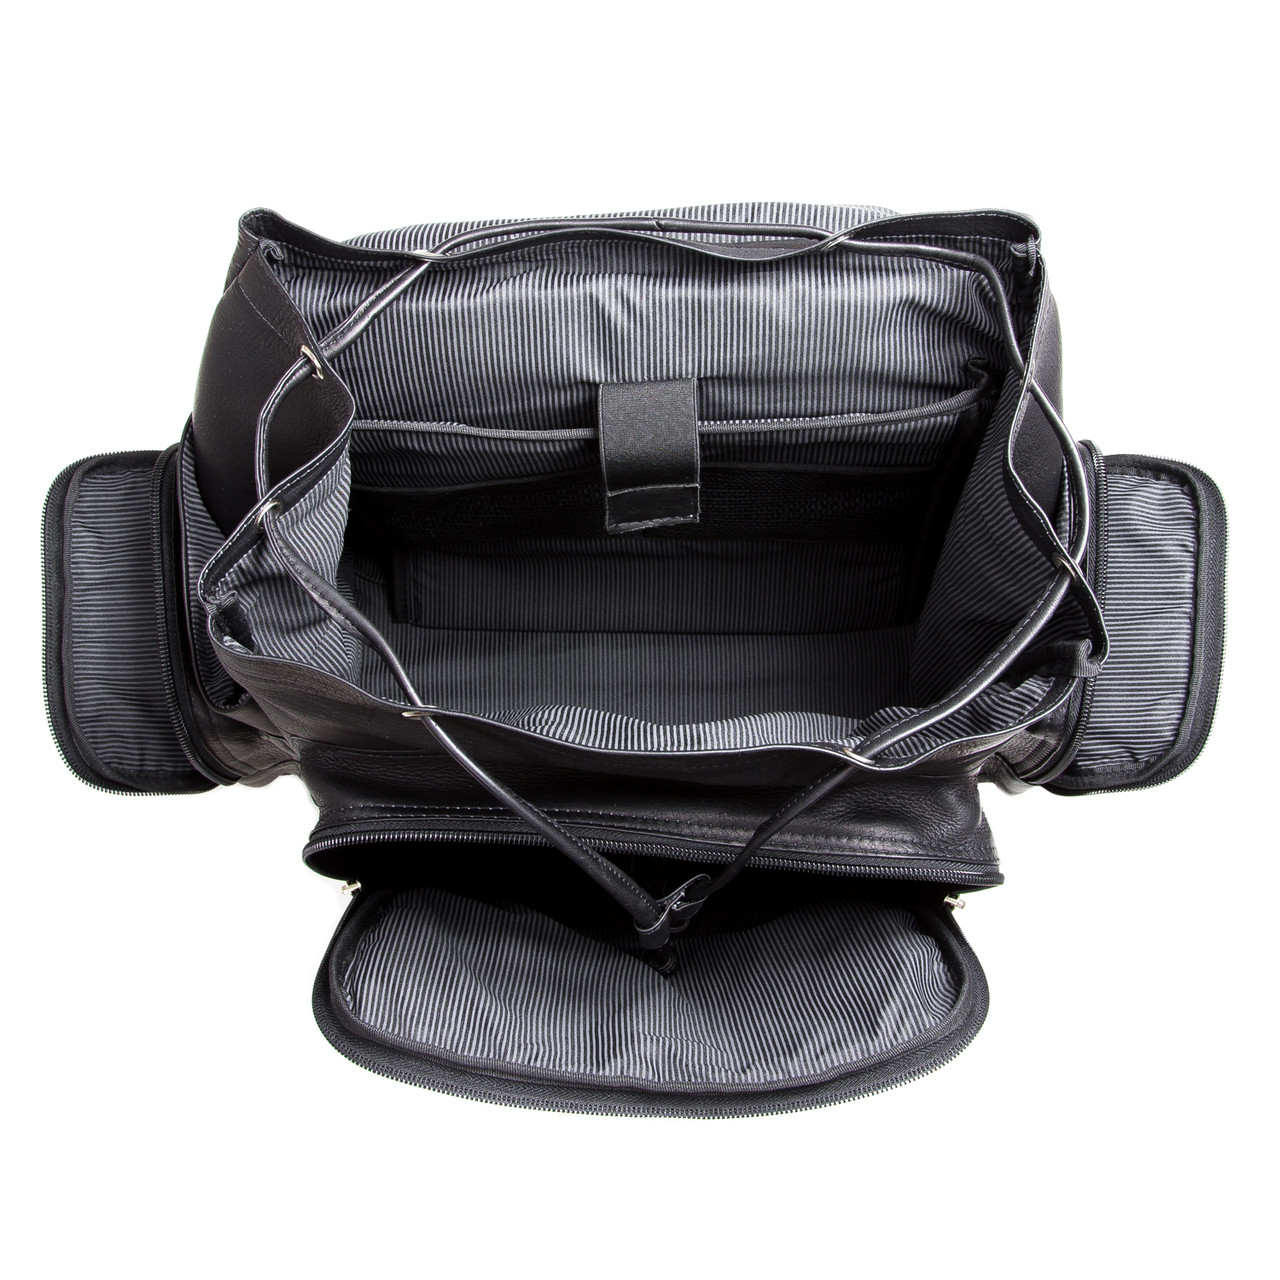 Muiska - Brooklyn -Spacious and versatile interior with a padded 17-inch Laptop Compartment